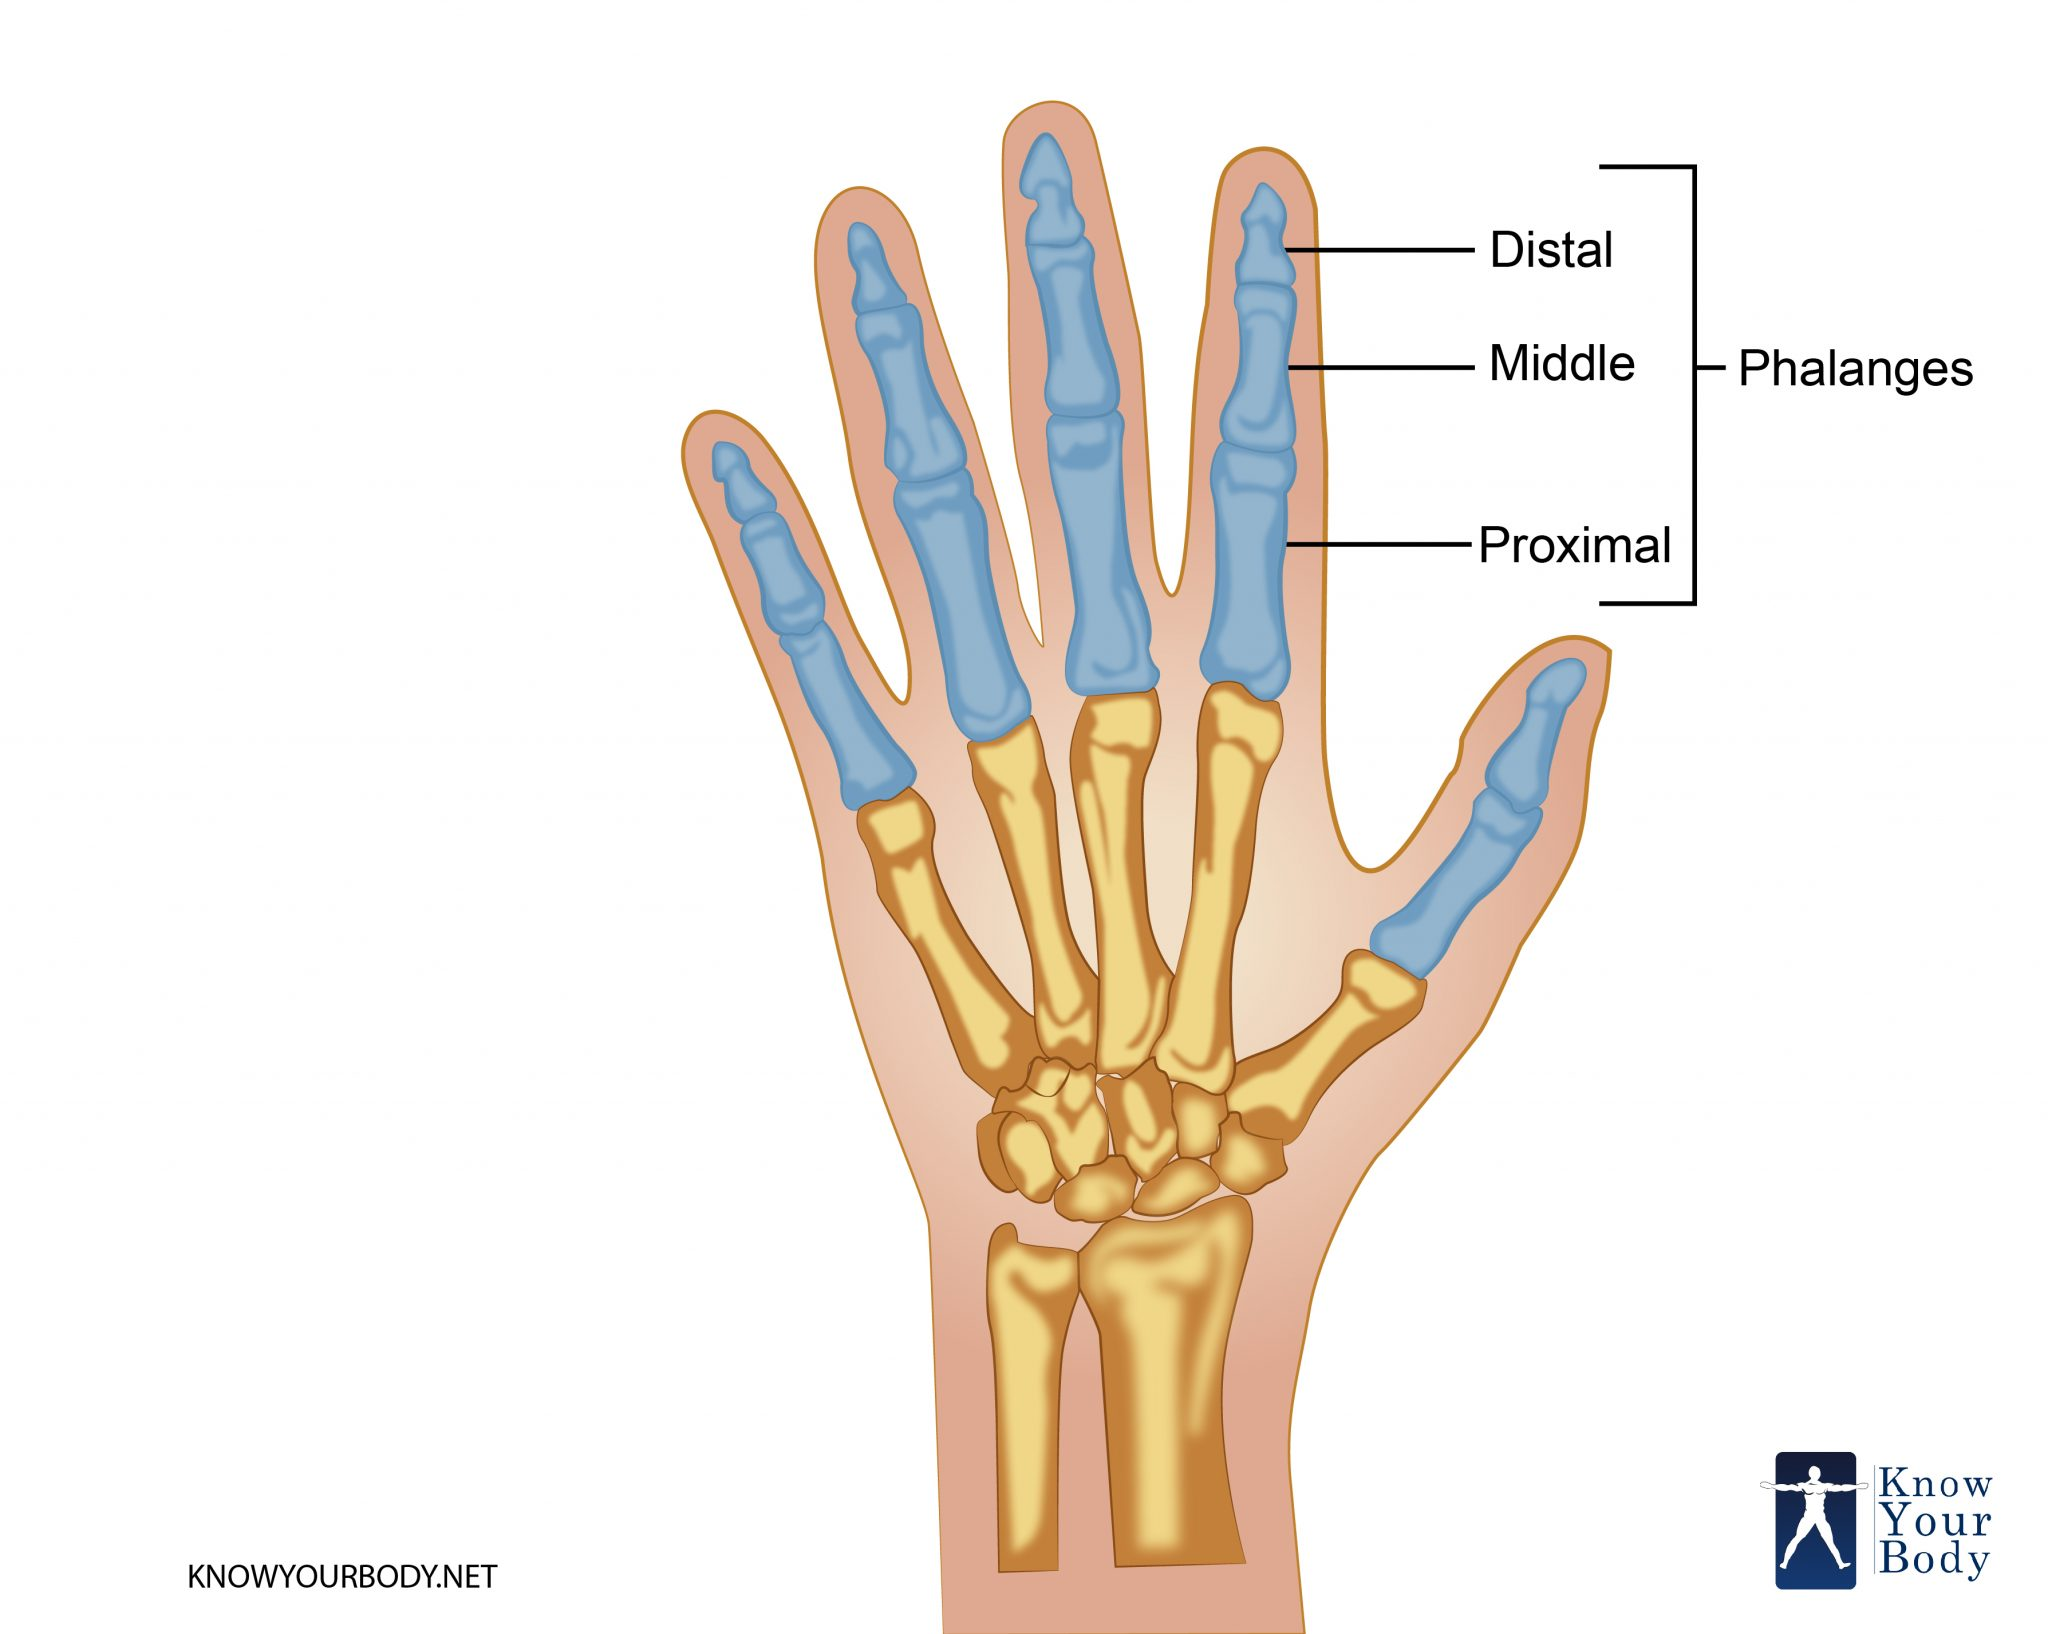 Phalanges - Definition, Function, Anatomy, Origin and FAQs